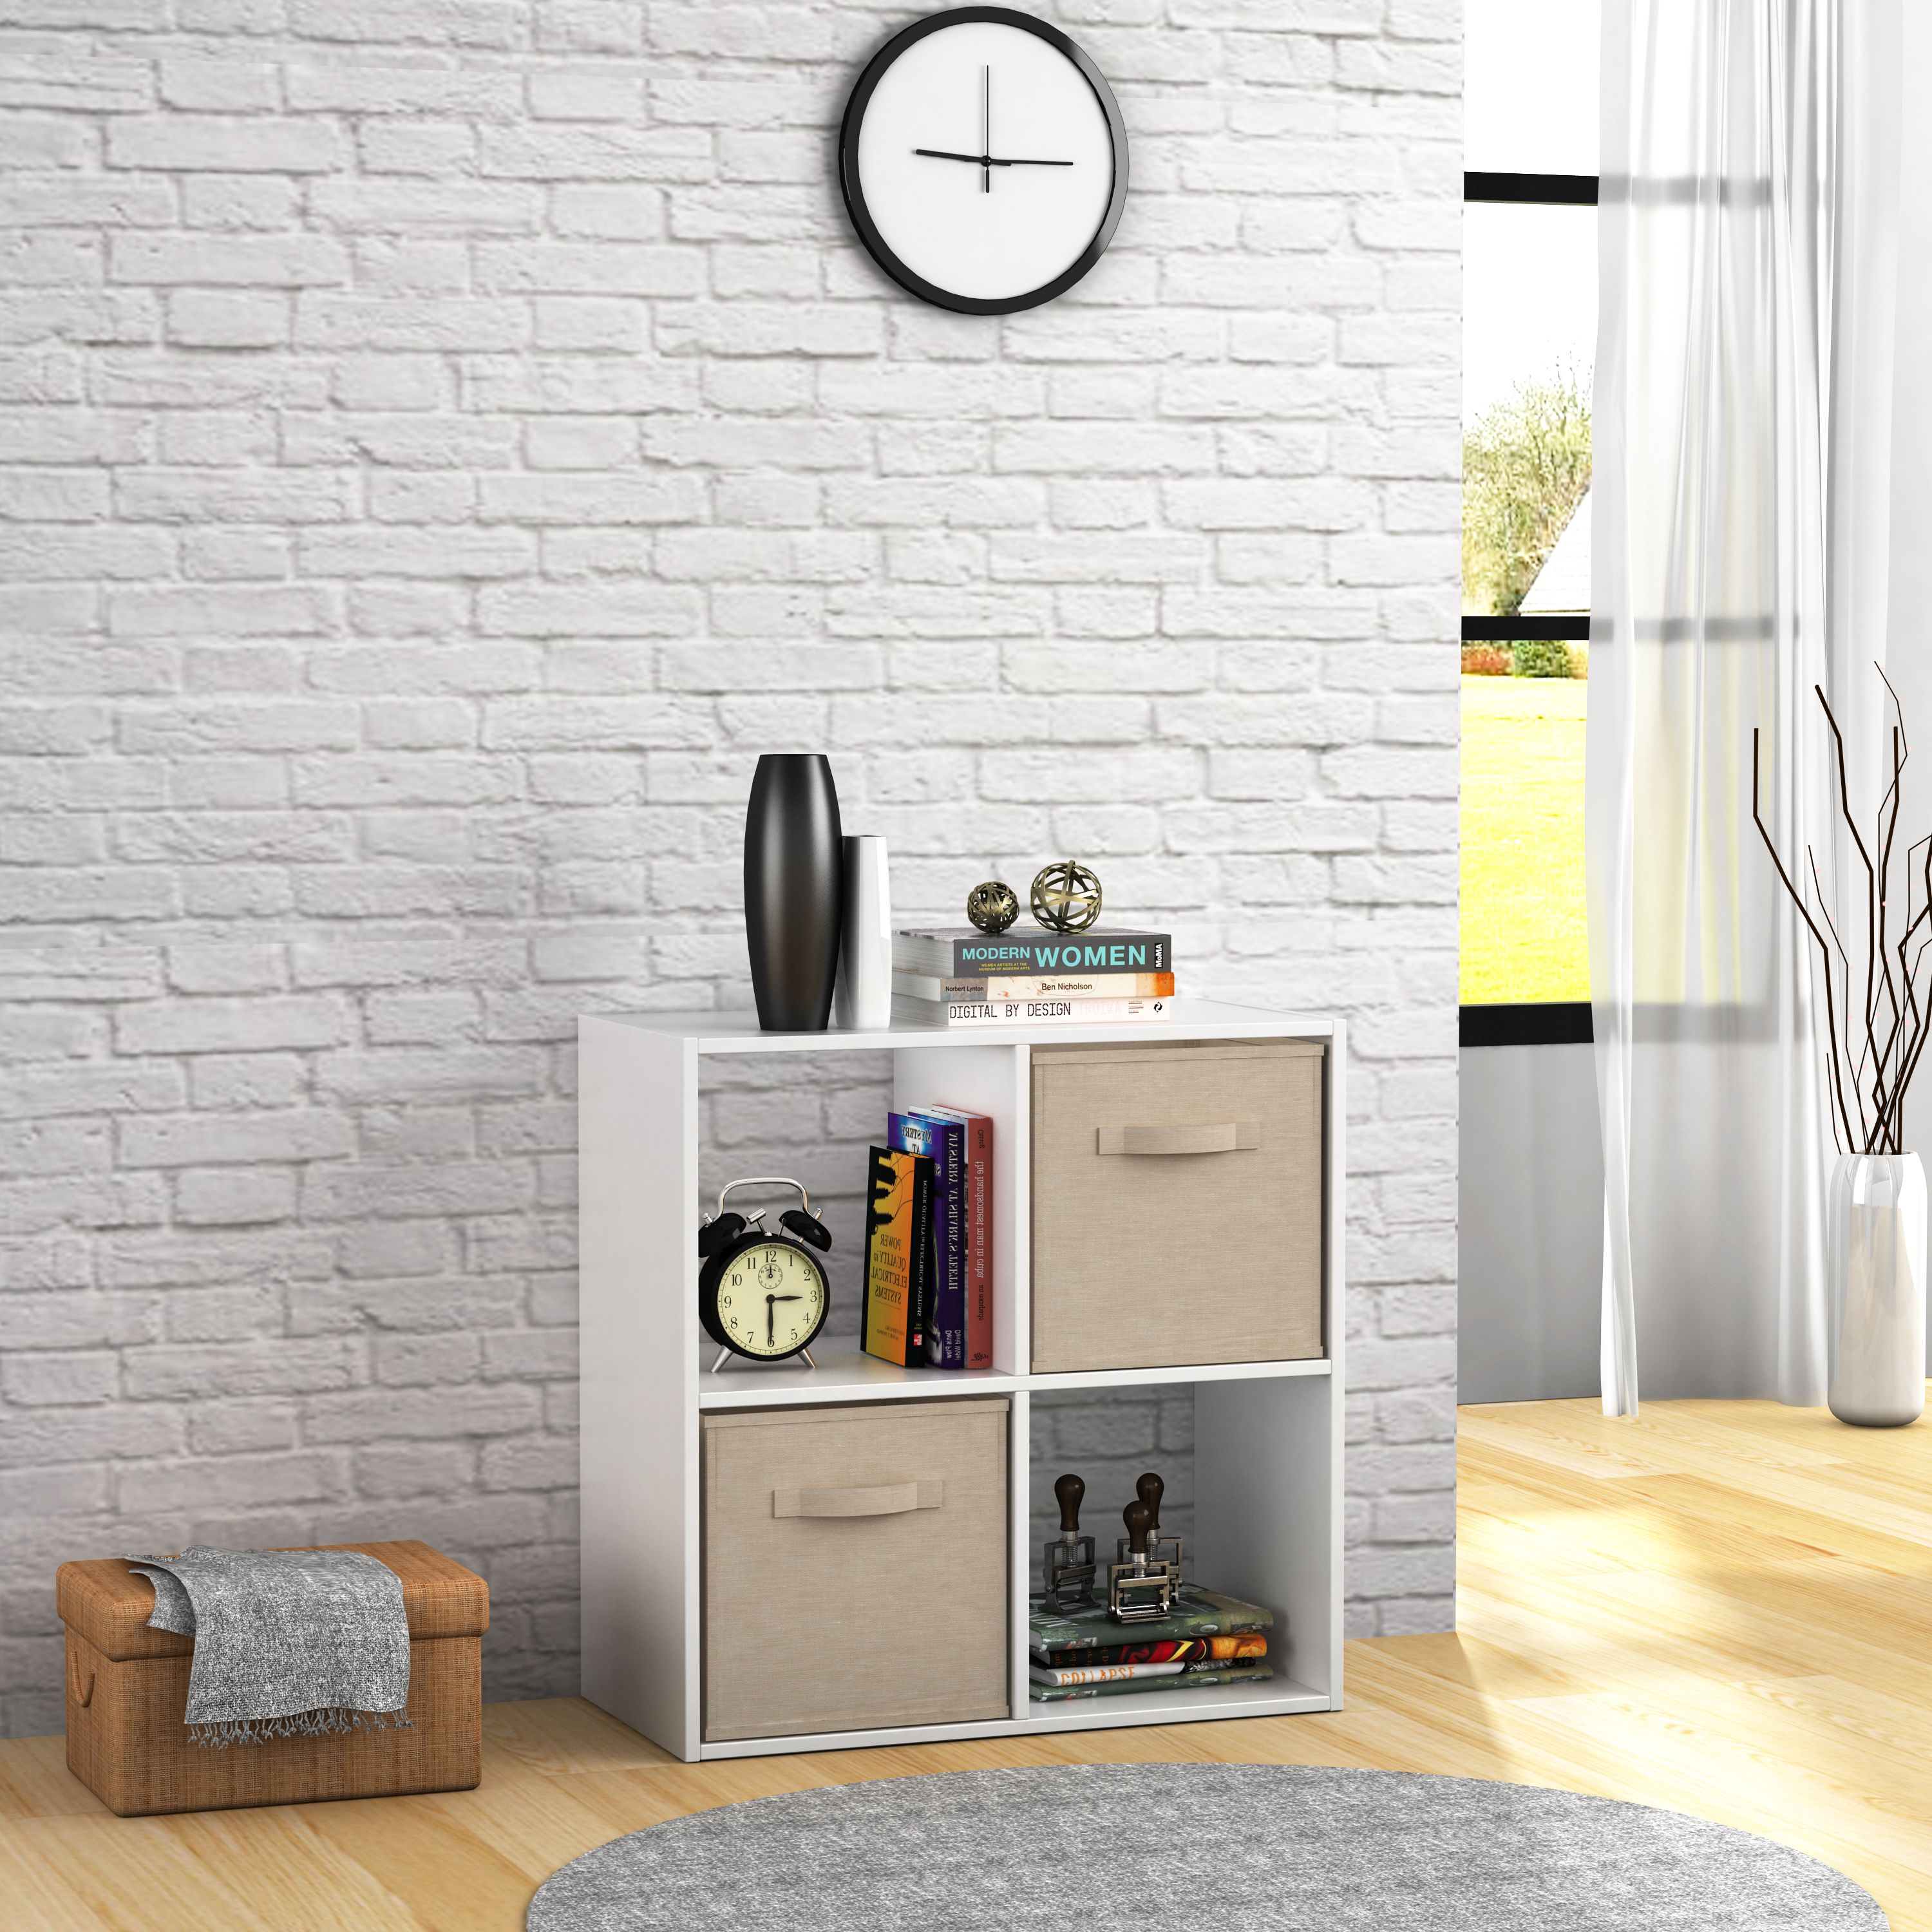 Mainstays 4 Cube Storage Organizer, Multiple Colors